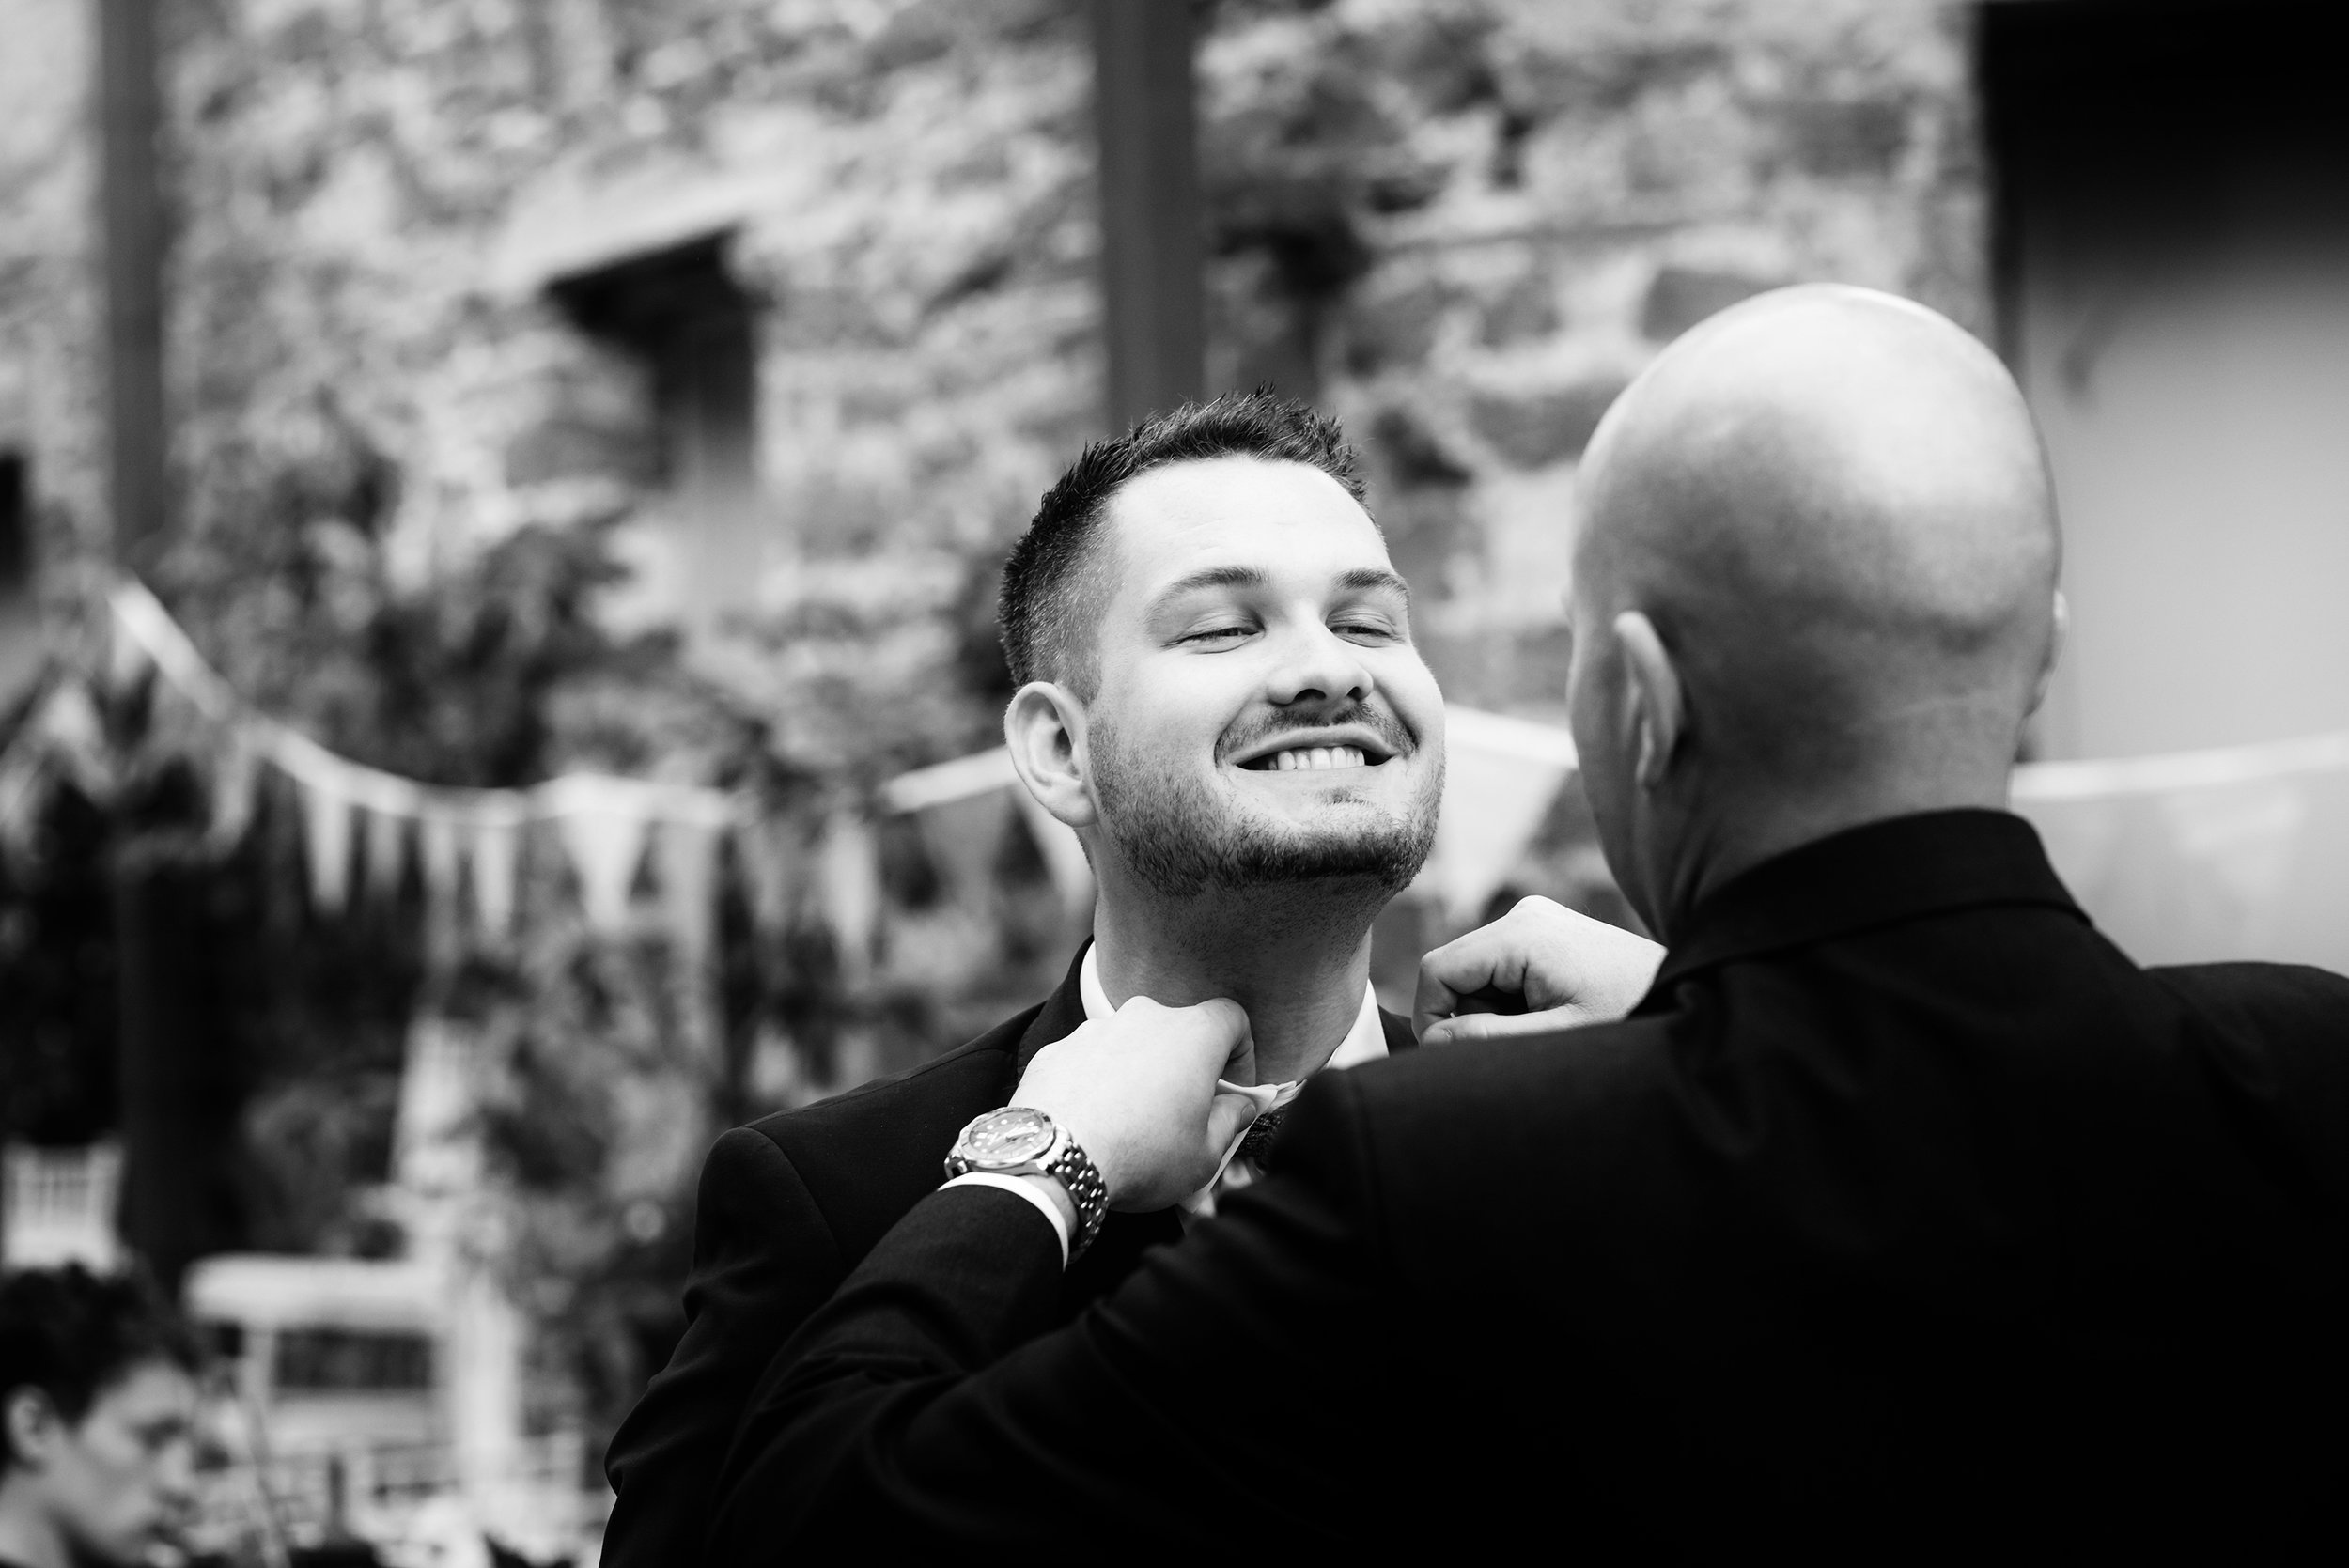 The groom getting a little help to straighten his tie